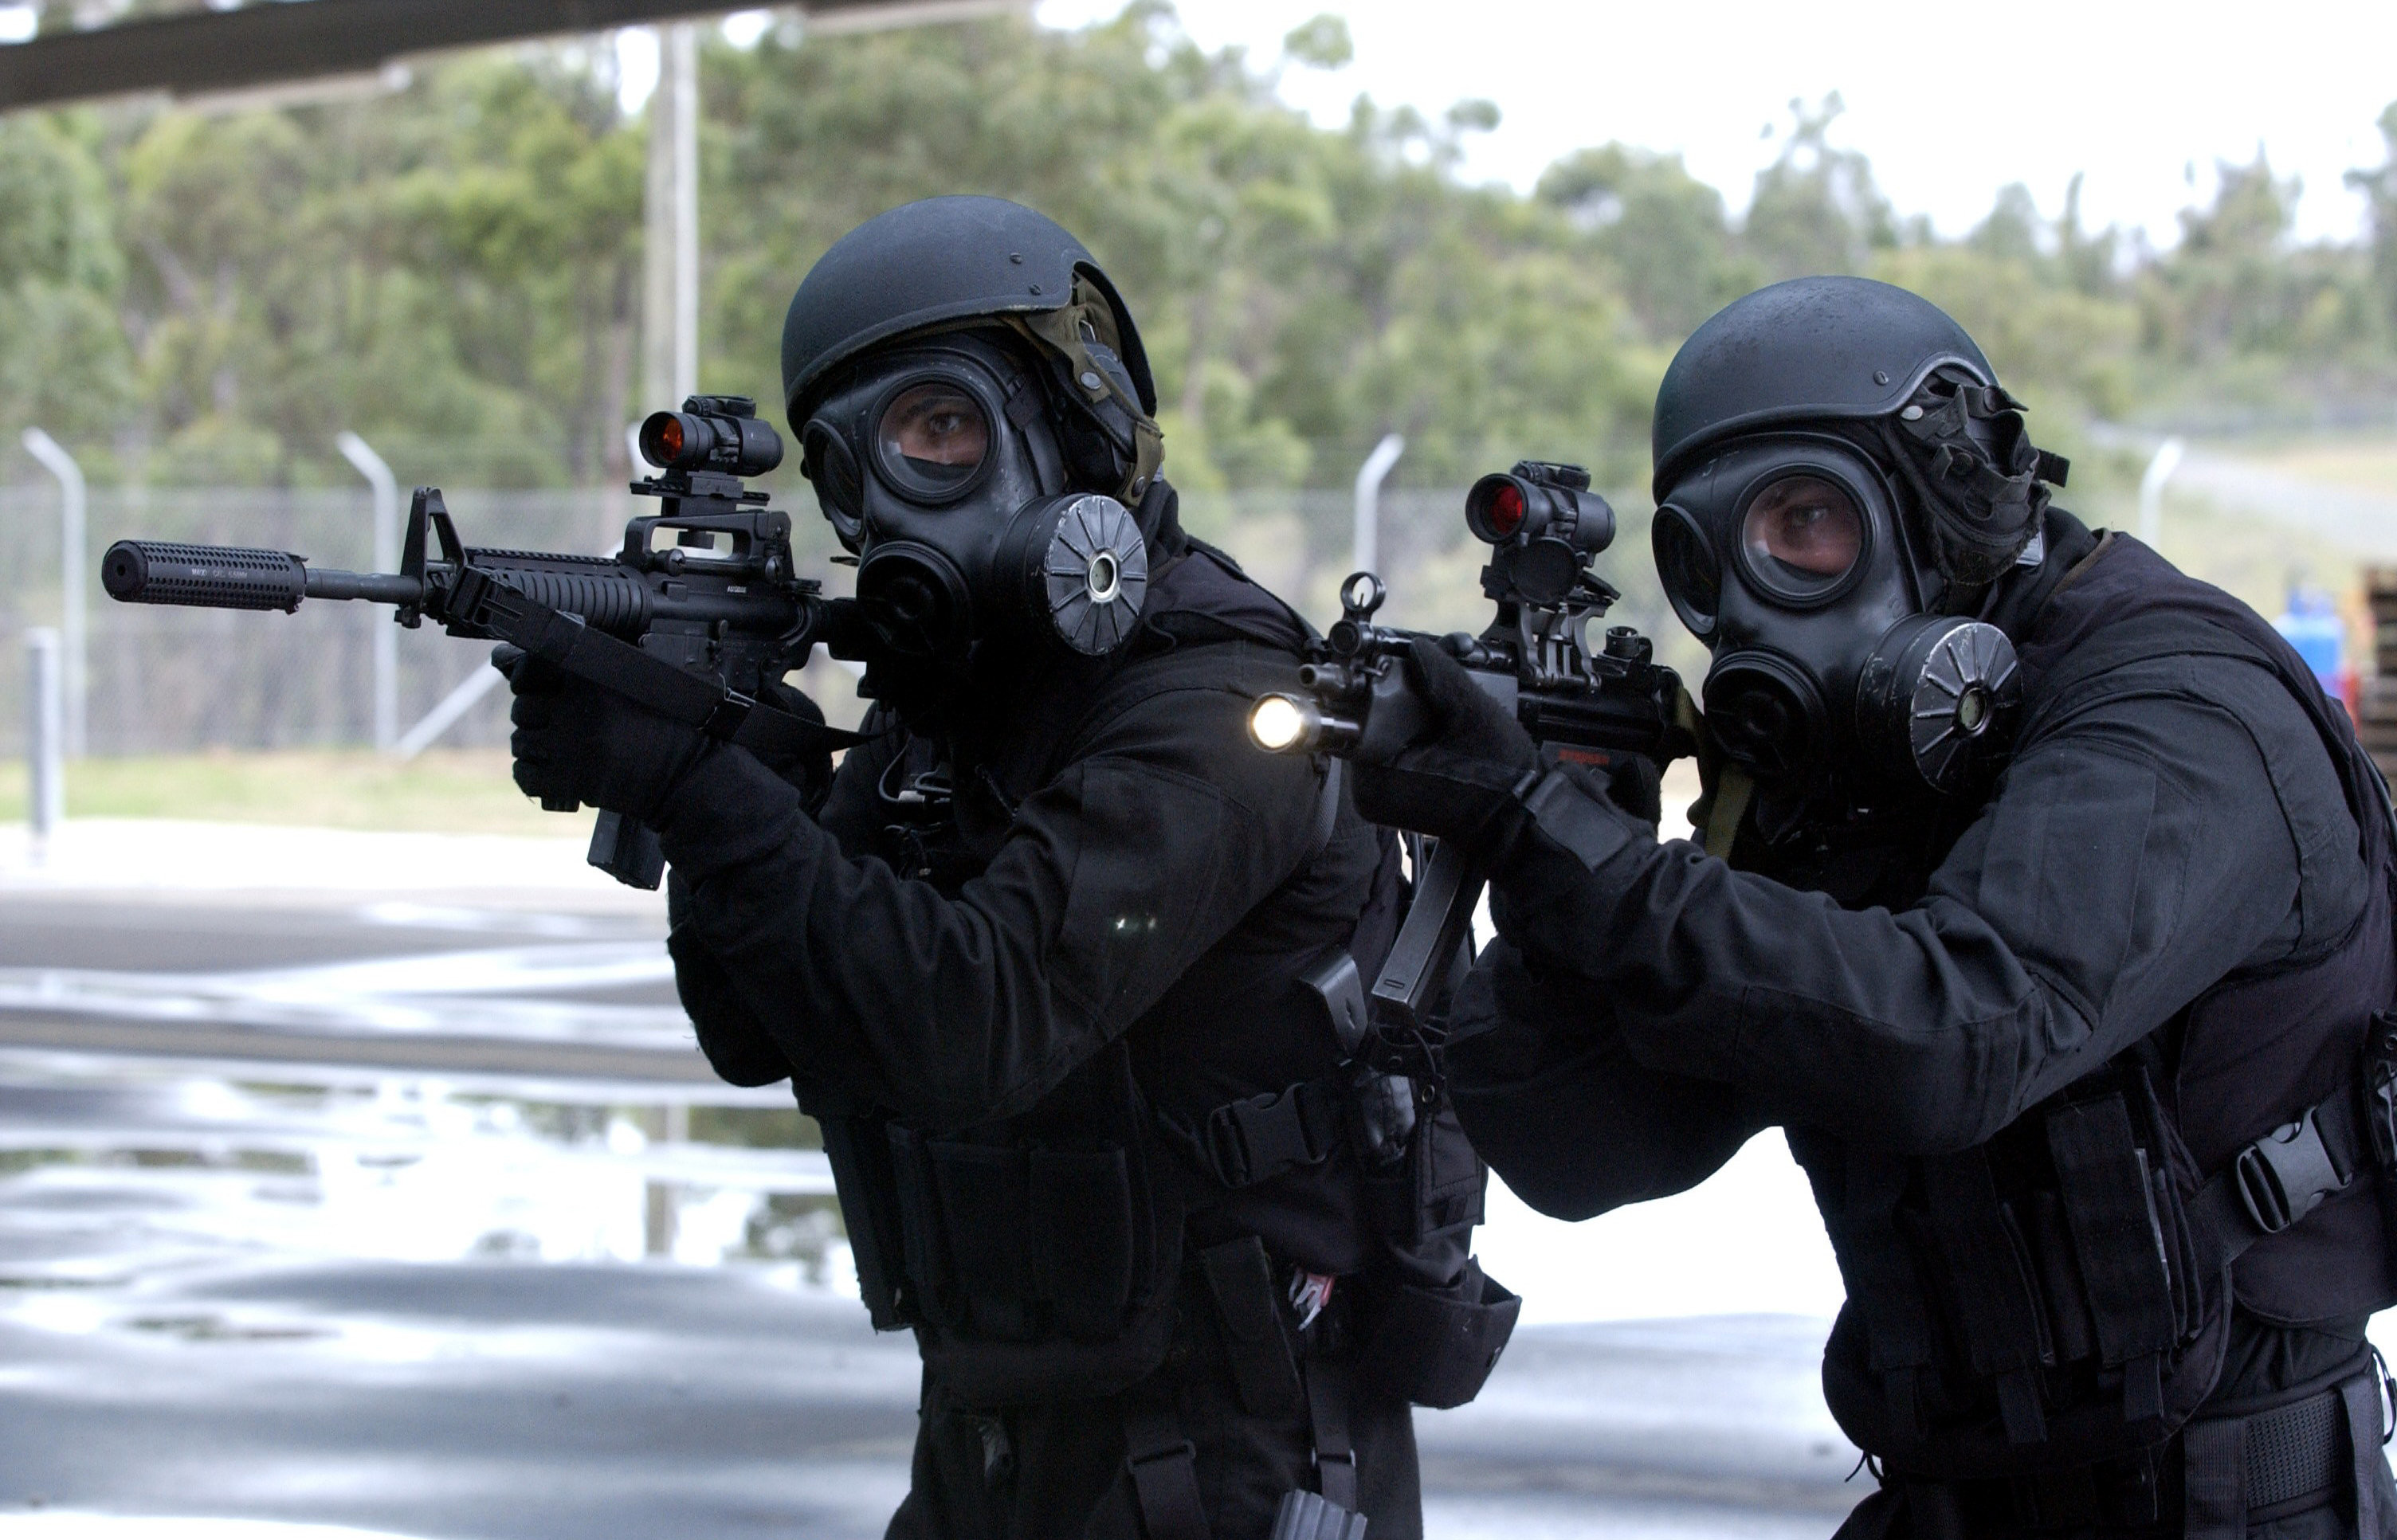 3008x1933 Download wallpaper: Police, SWAT wallpapers, wallpapers for desktop,  Soldiers, special forces